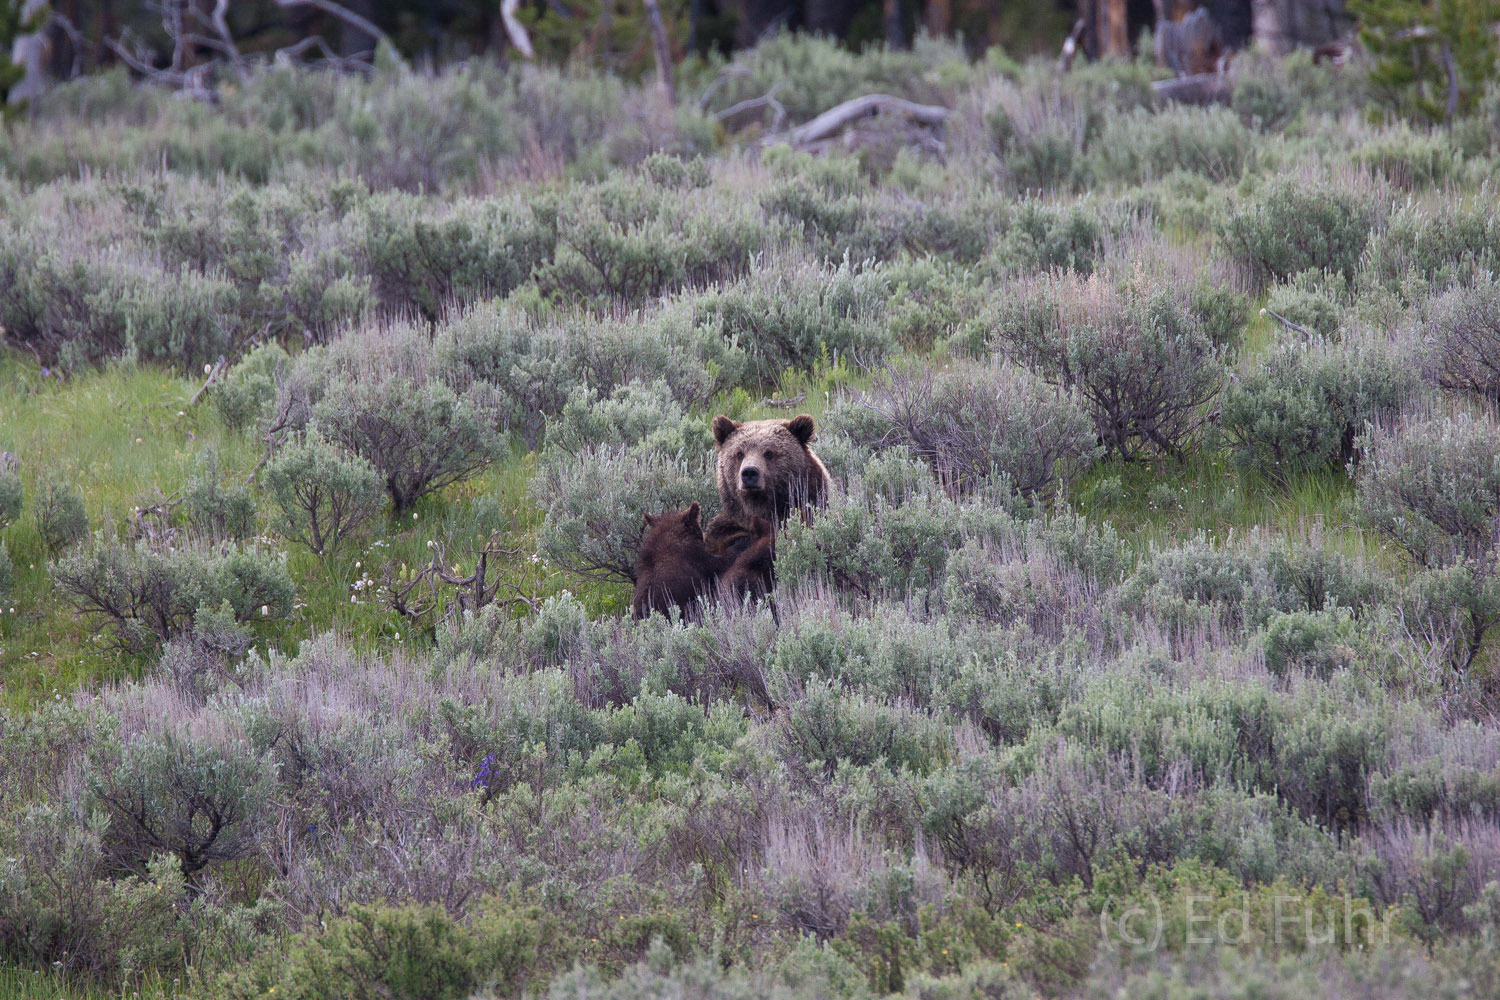 A mother grizzly provides nourishment to her growing twin cubs.